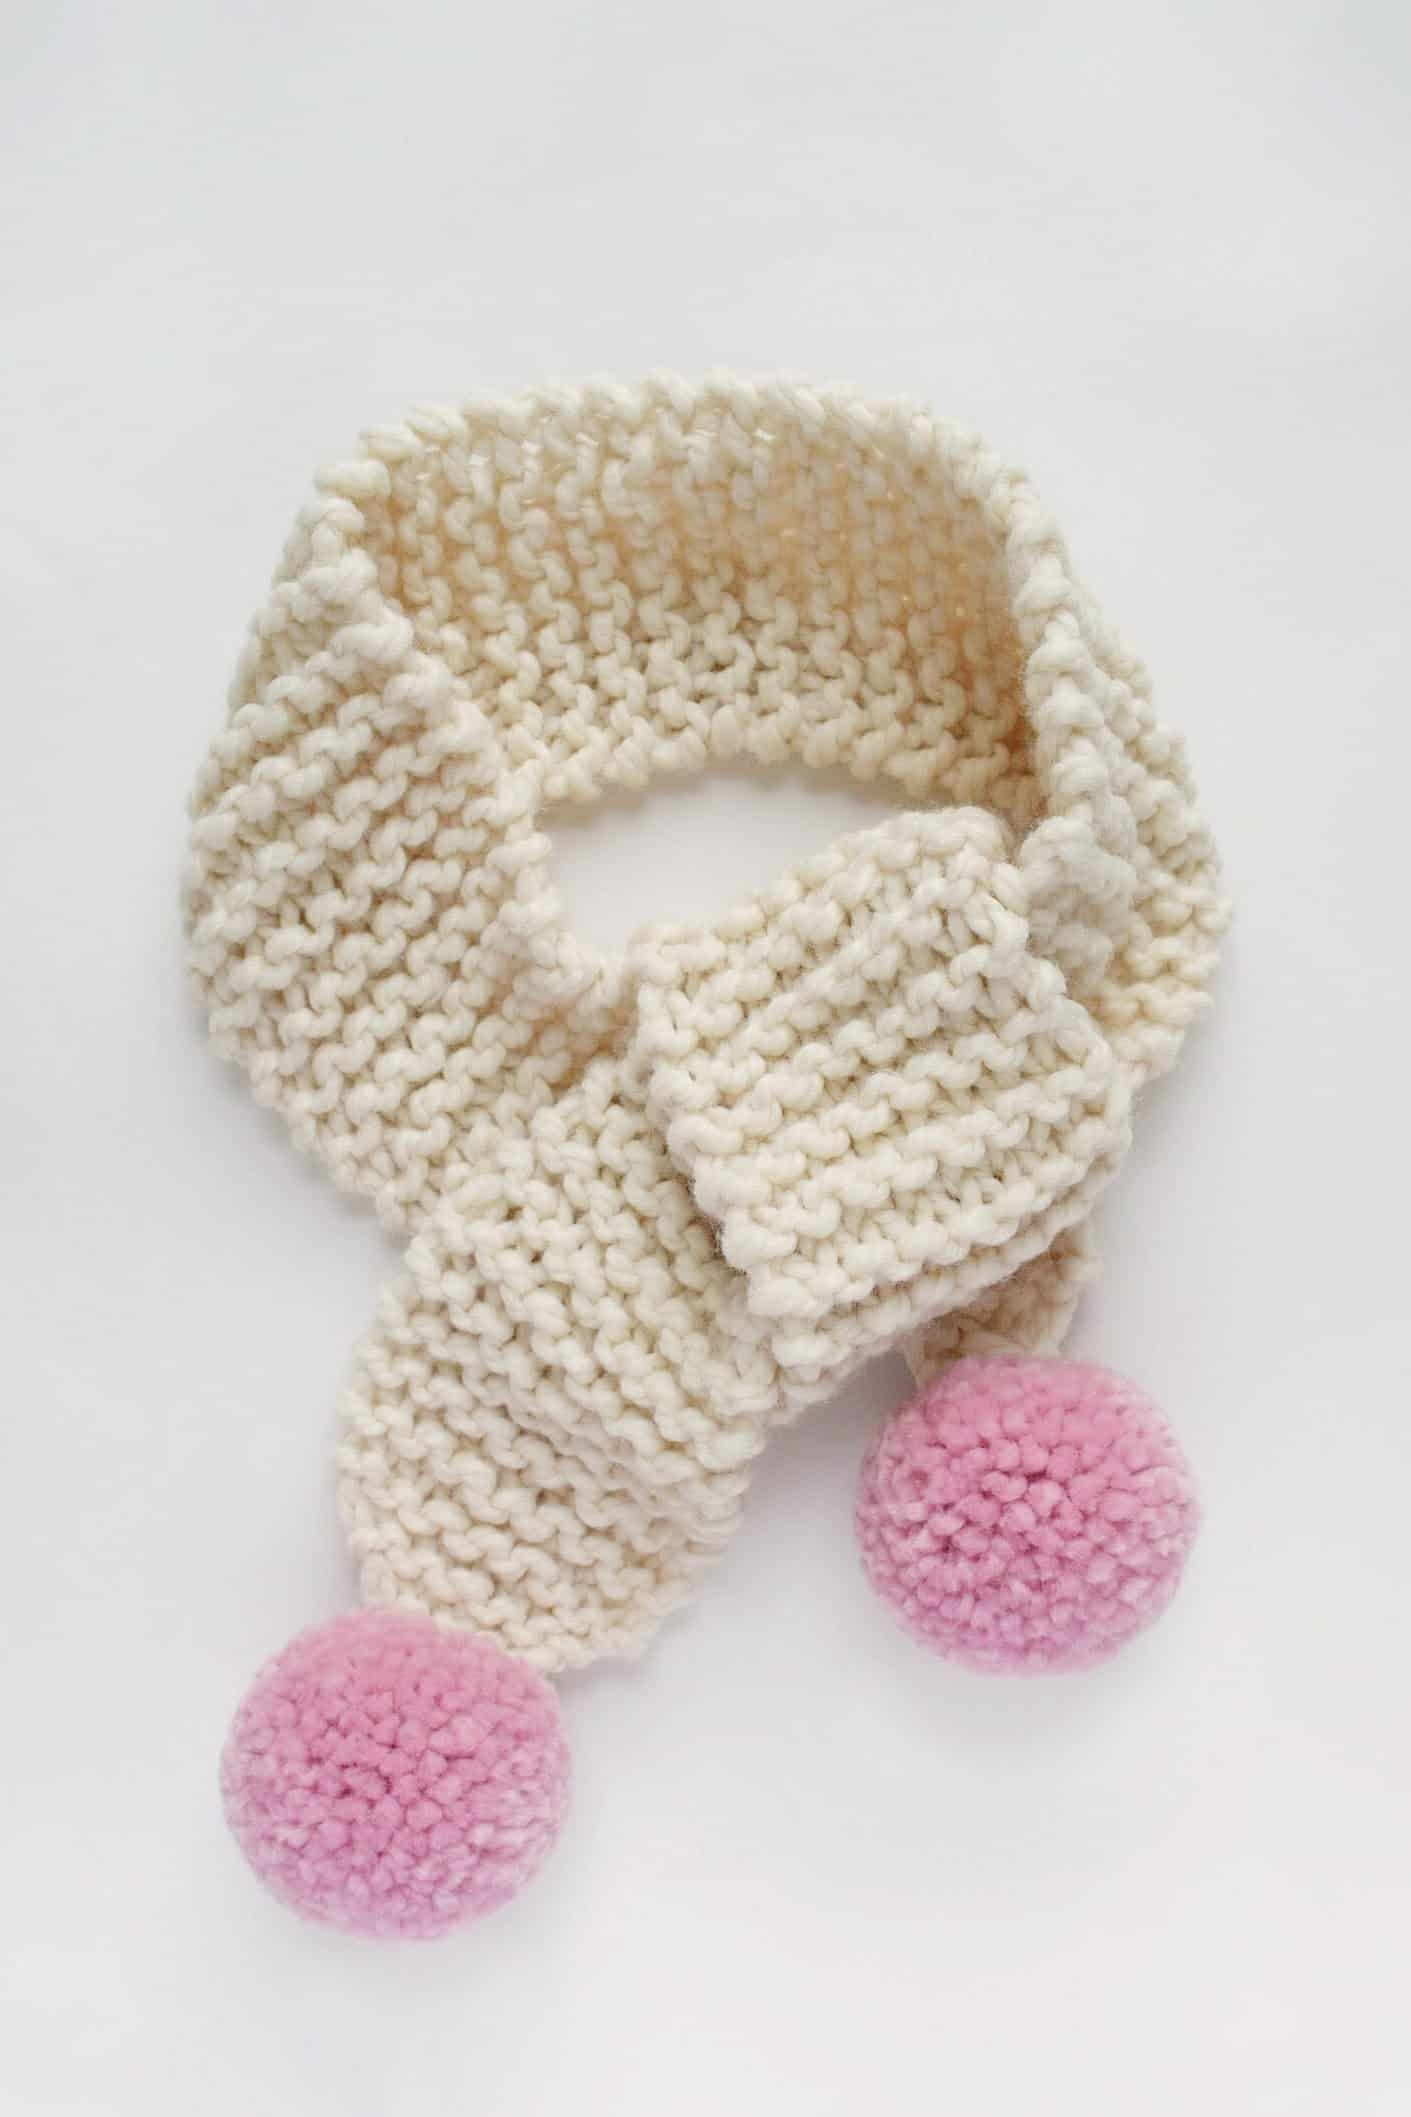 Knit Pom Pom Scarf - Free Pattern - Knifty Knittings